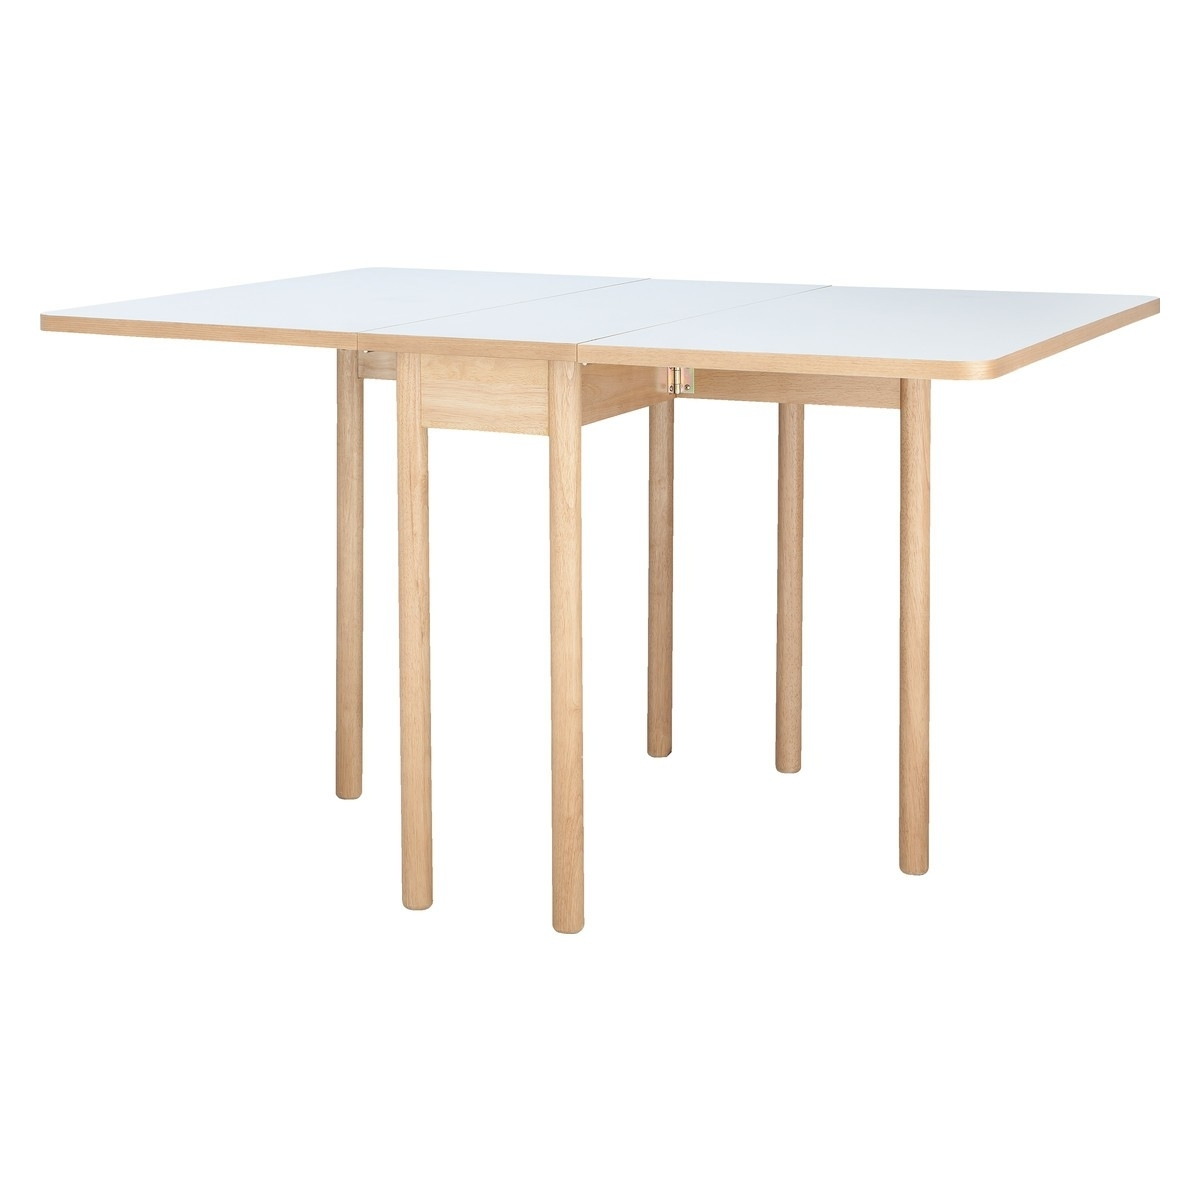 Newest Foldaway Dining Tables Regarding Suki 2 6 Seat White Folding Dining Table (View 18 of 25)